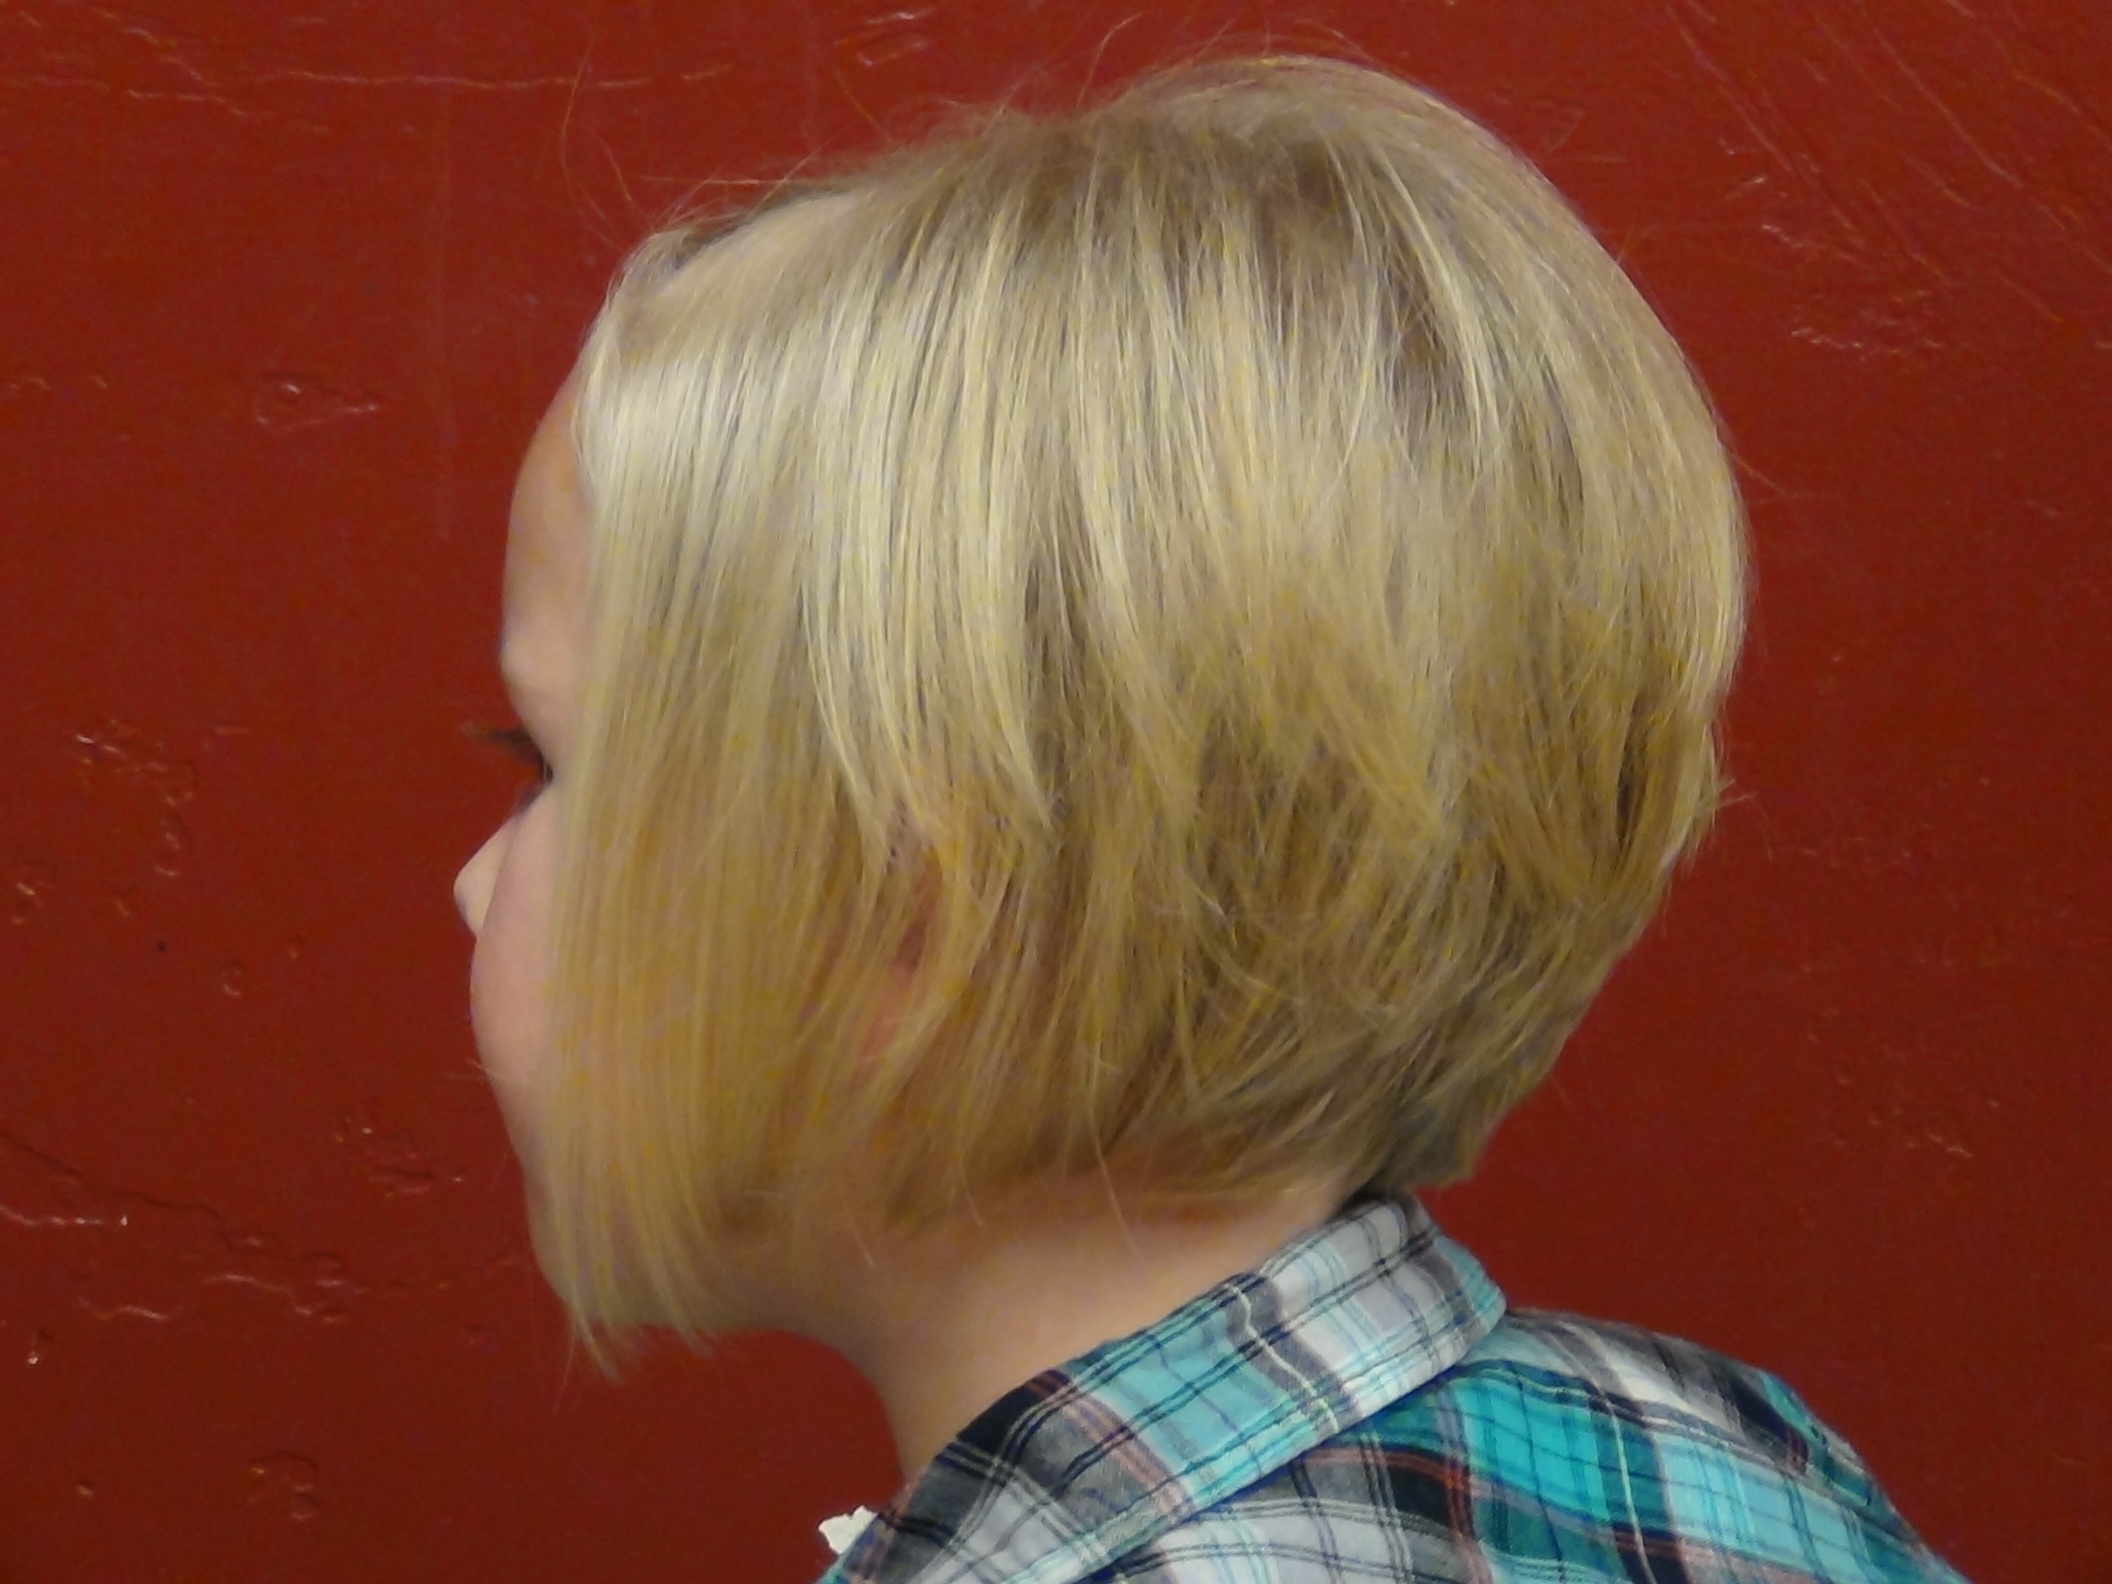 A Line Bob Haircut For Little Girl Hairstyles | Boys And (Girls Intended For Little Girl Short Hairstyles Pictures (View 17 of 25)